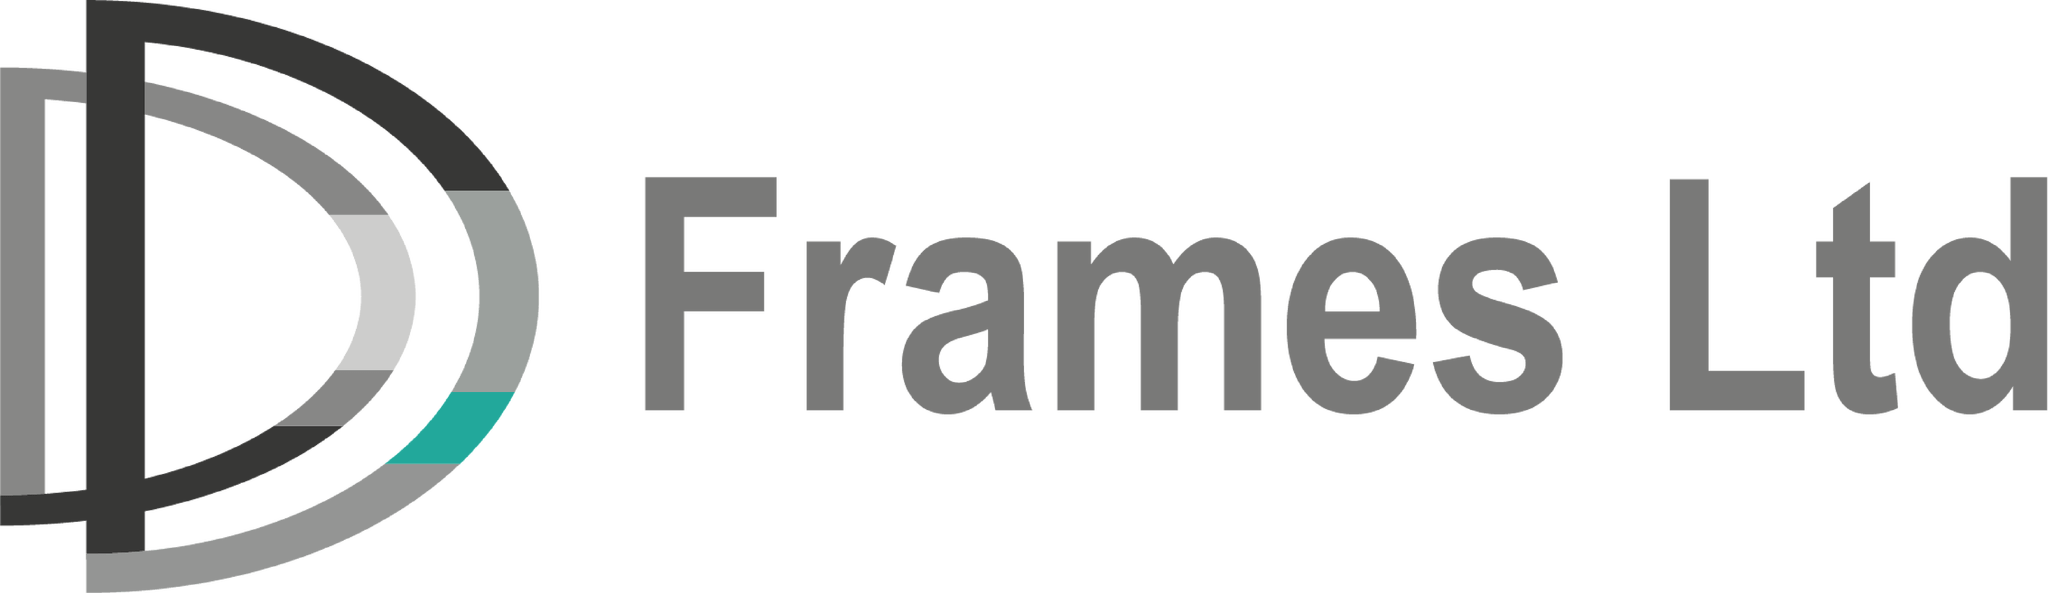 DD Frames Ltd